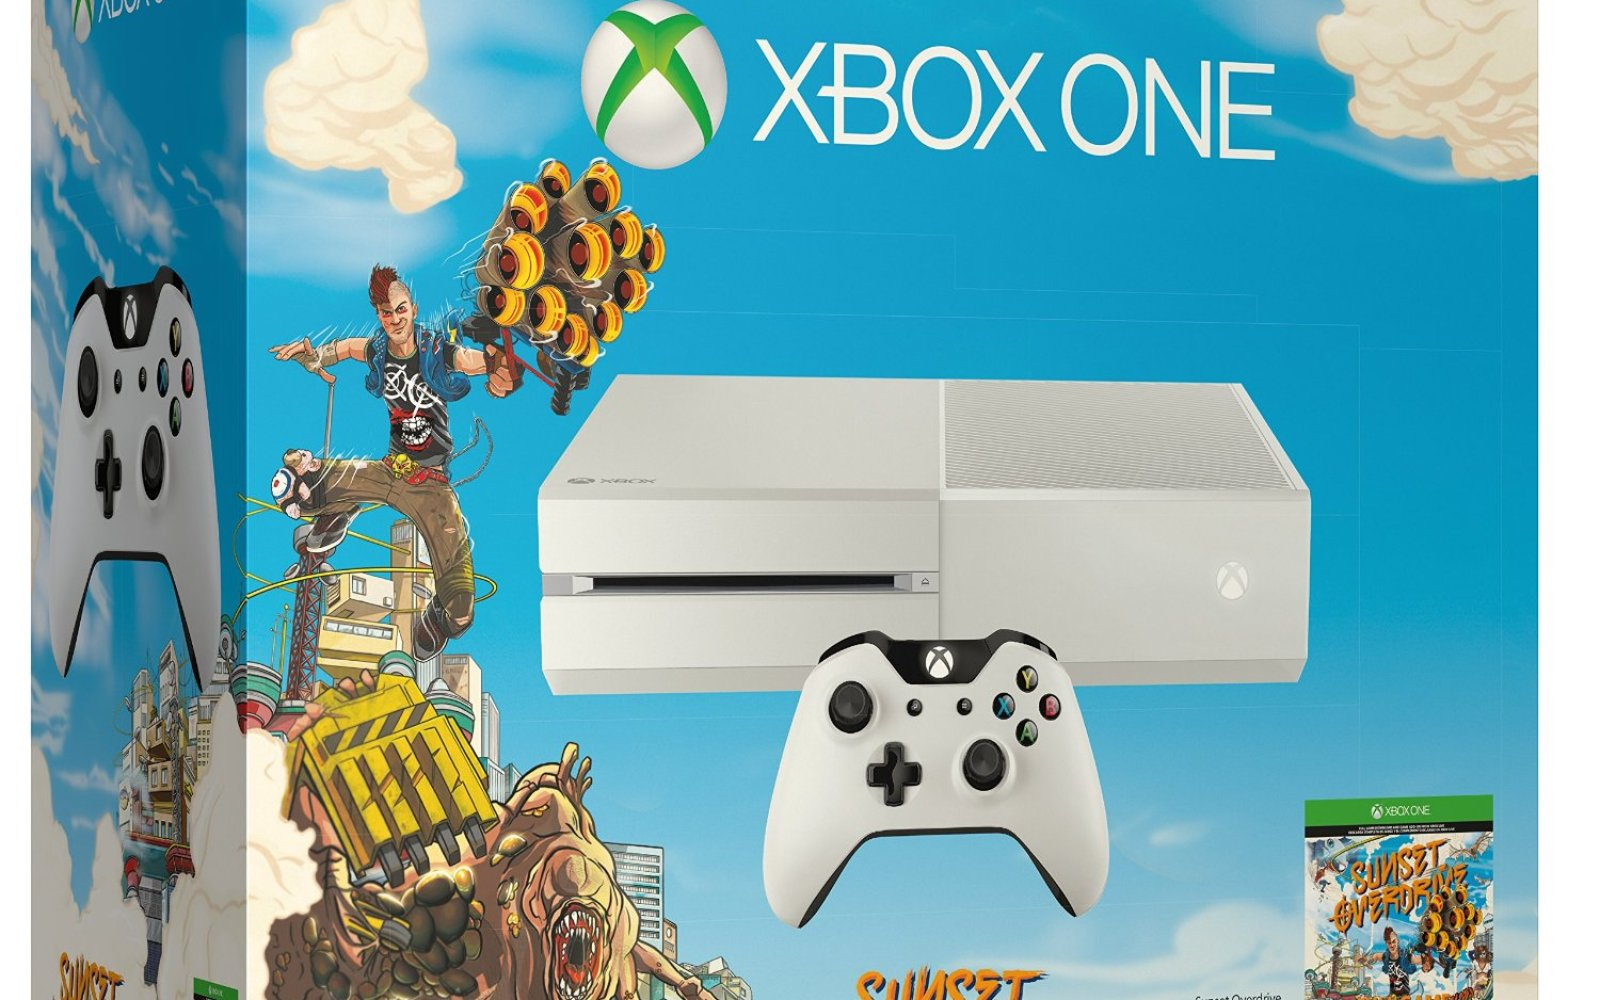 Xbox One holiday price drop now live across all retailers with prices starting at $349 (or lower)